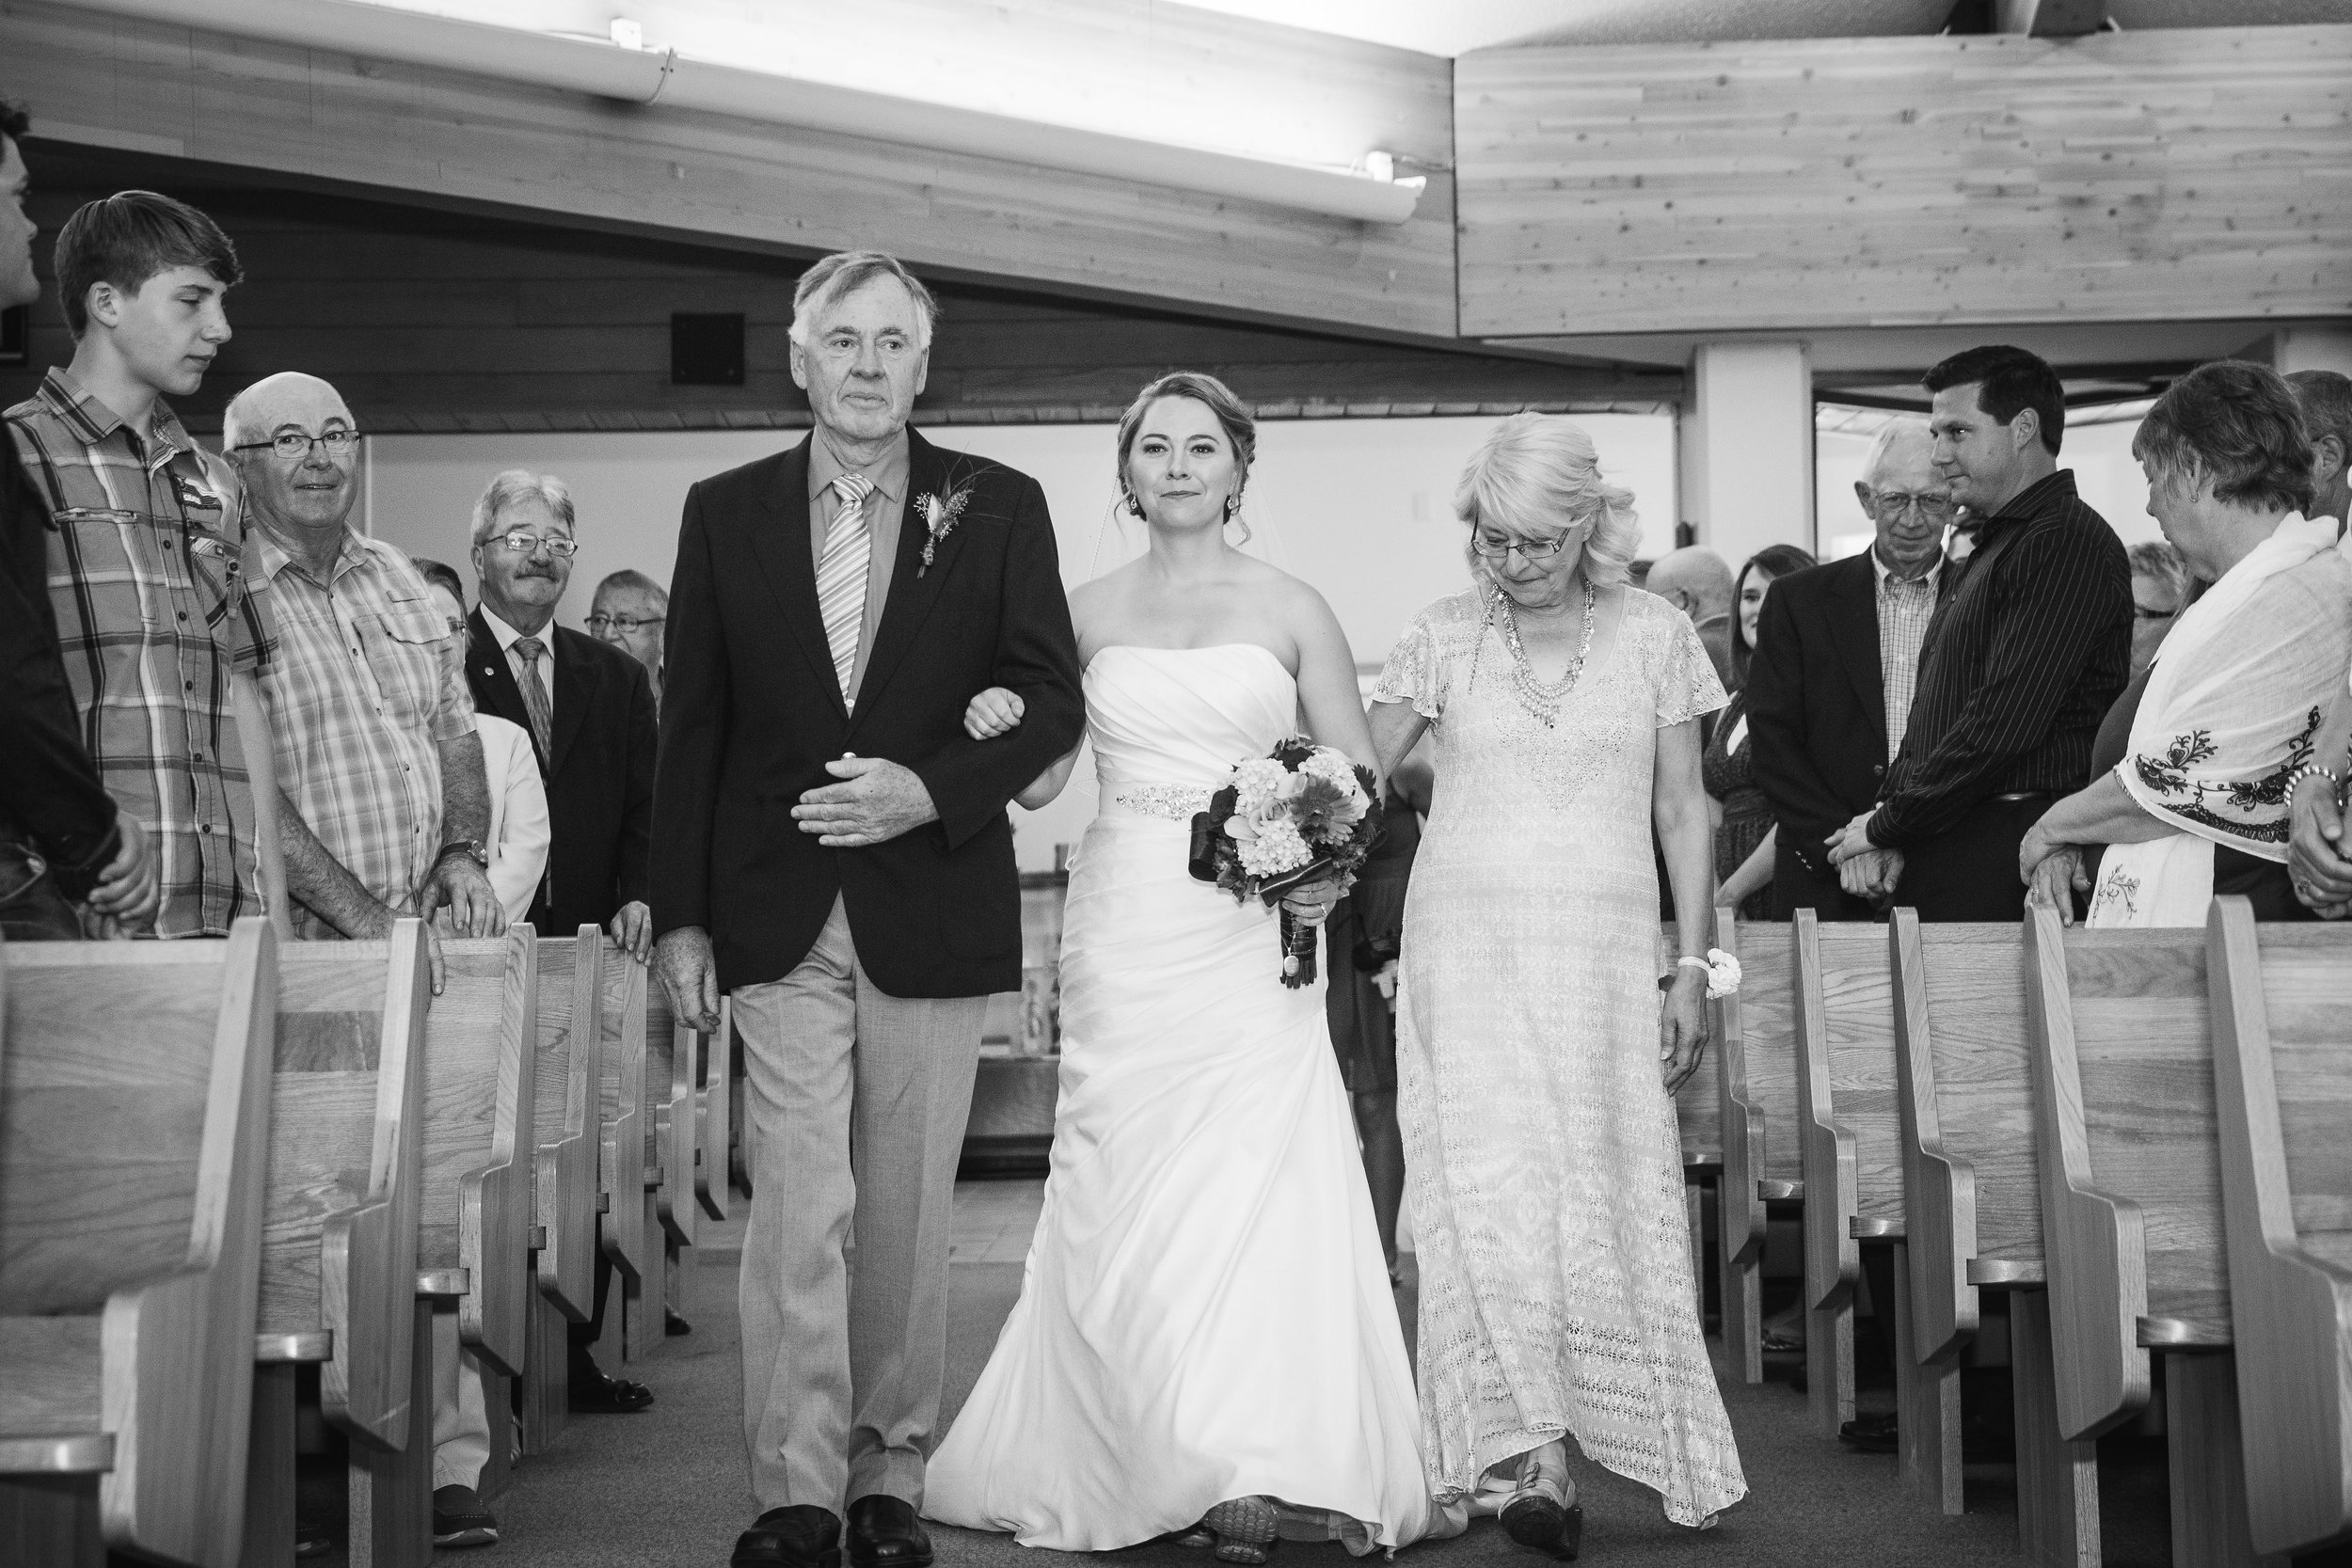 wedding_photography_vermilion-0281.jpg